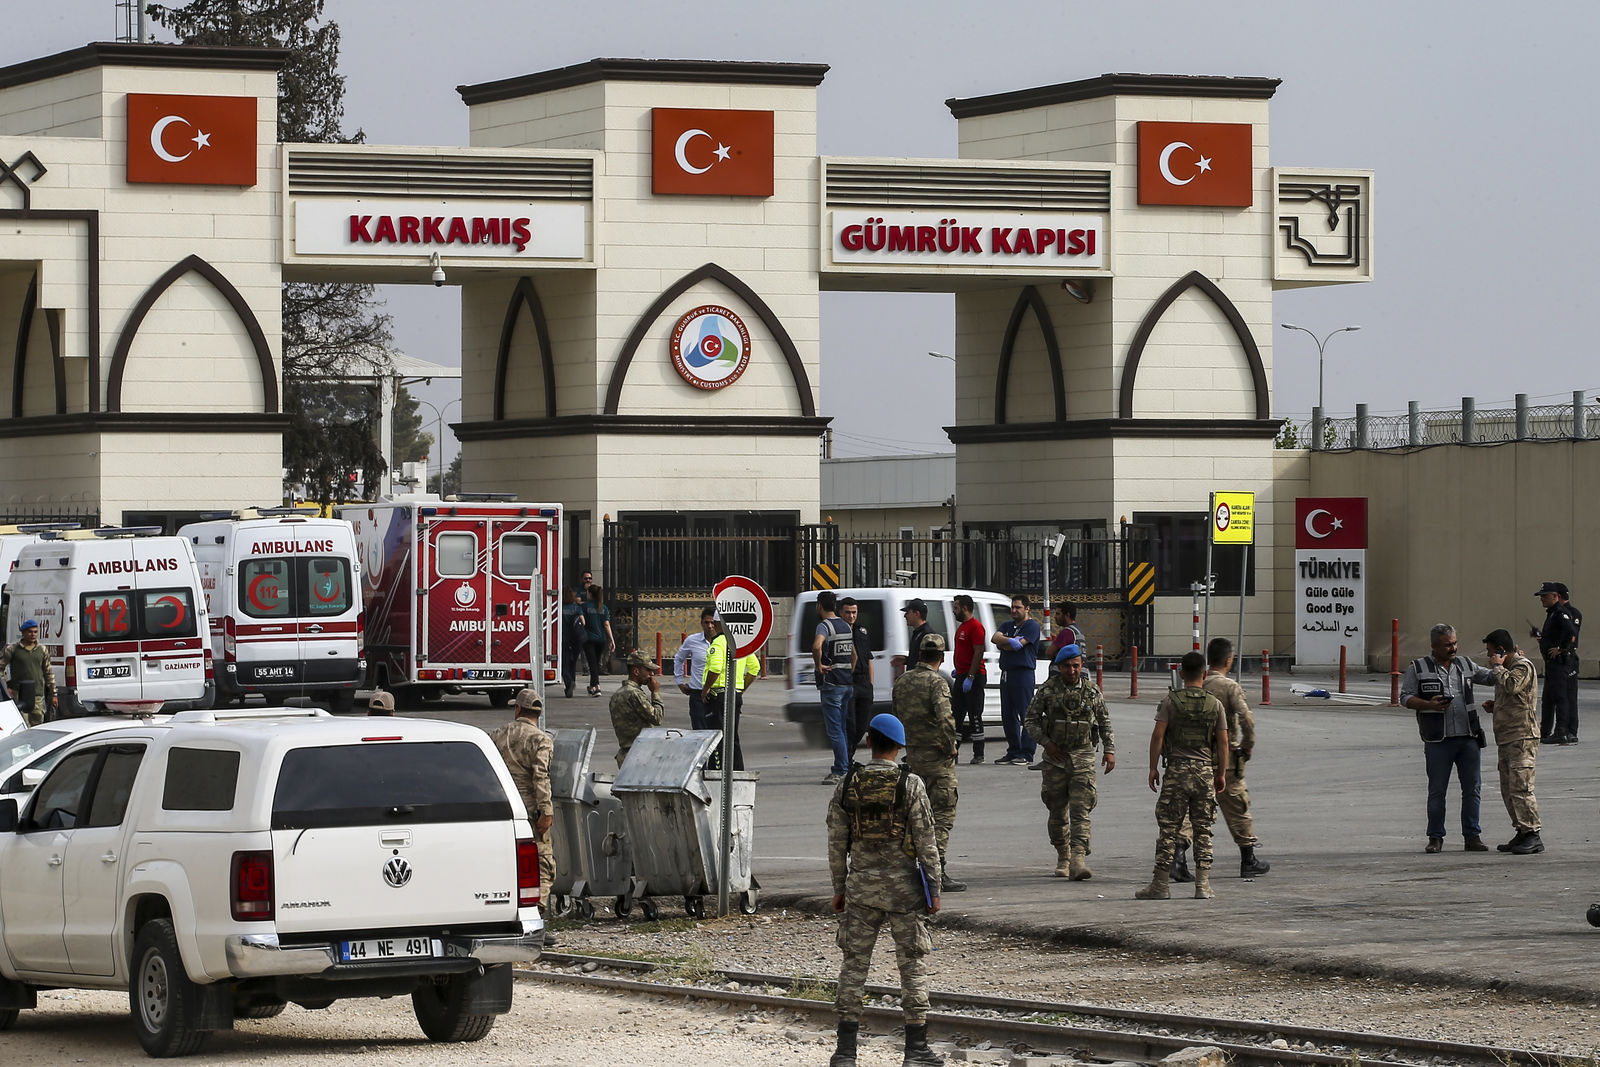 Turkish soldiers wait in the Karkamis border gate at Gaziantep province, southeastern Turkey, Wednesday, Oct. 16, 2019. Ambulances were going in an out of the Karkamis border crossing, just across the frontier from the Syrian town of Jarablus and some 30km north of Manbij, believed to be carrying injured in Turkey's military offensive in northern Syria. Turkish officials have not yet confirmed any clashes or casualties. (AP Photo/Emrah Gurel)